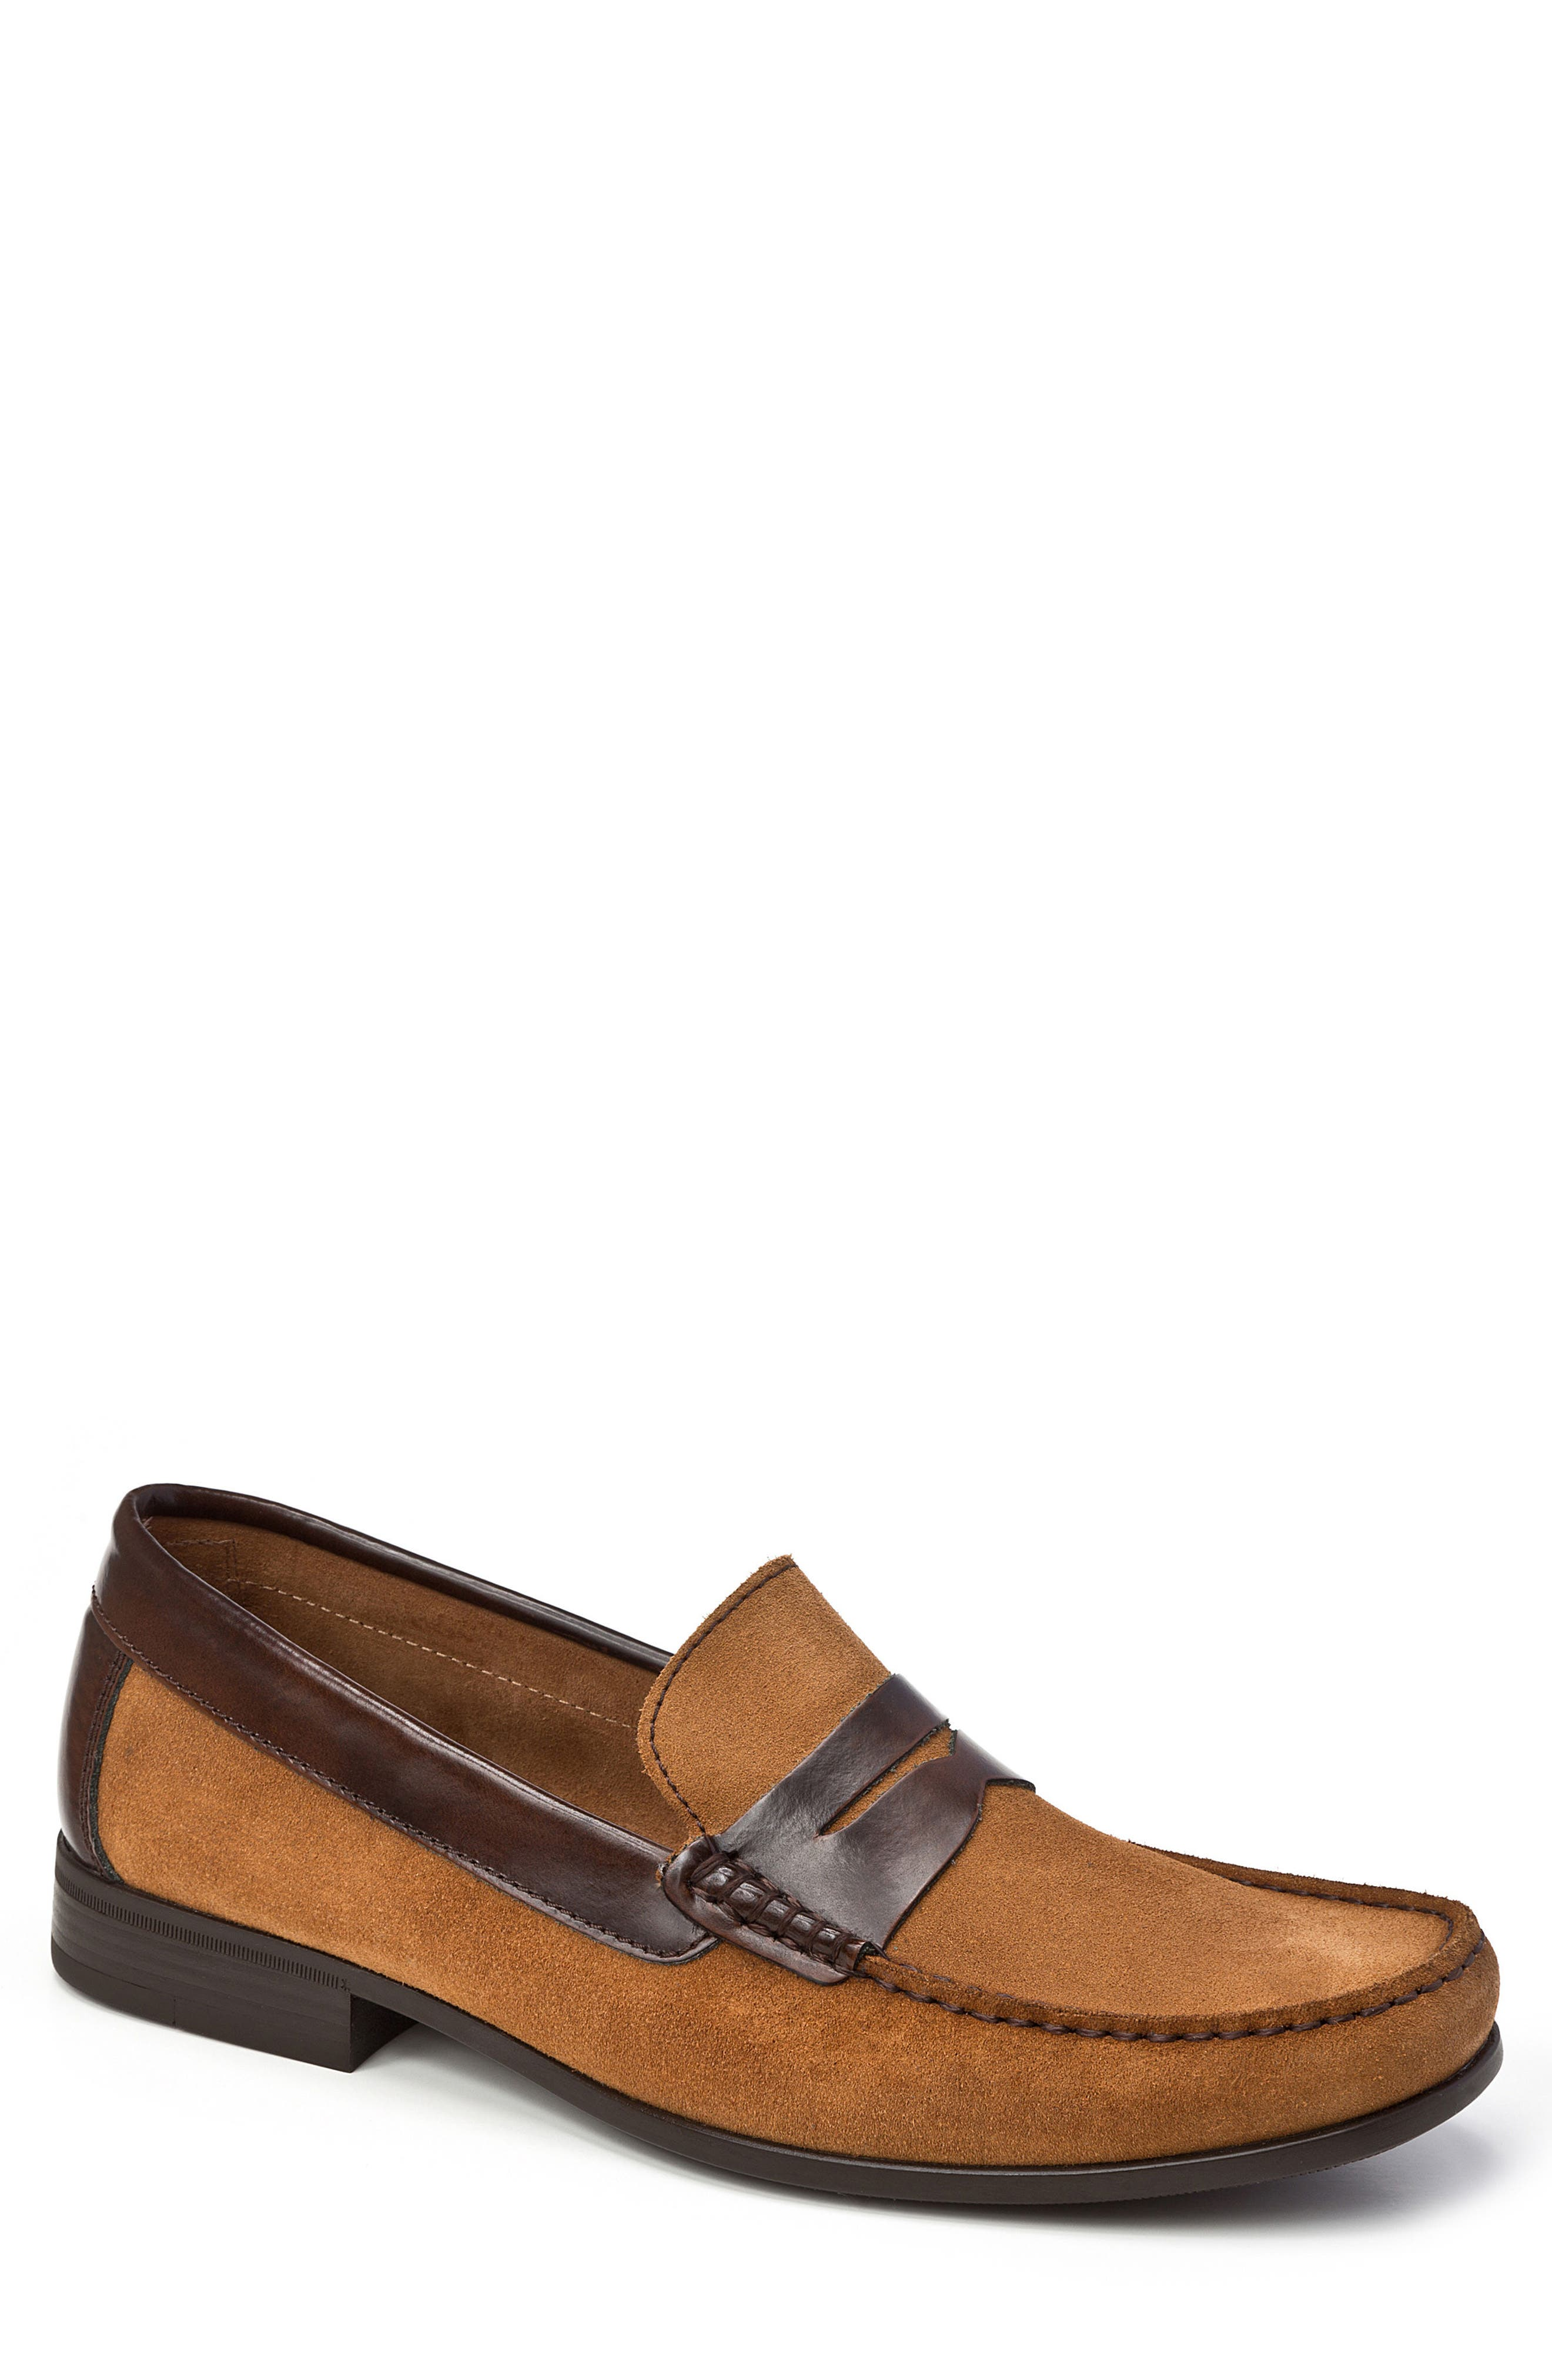 Alternate Image 1 Selected - Sandro Moscoloni Lucho Penny Loafer (Men)